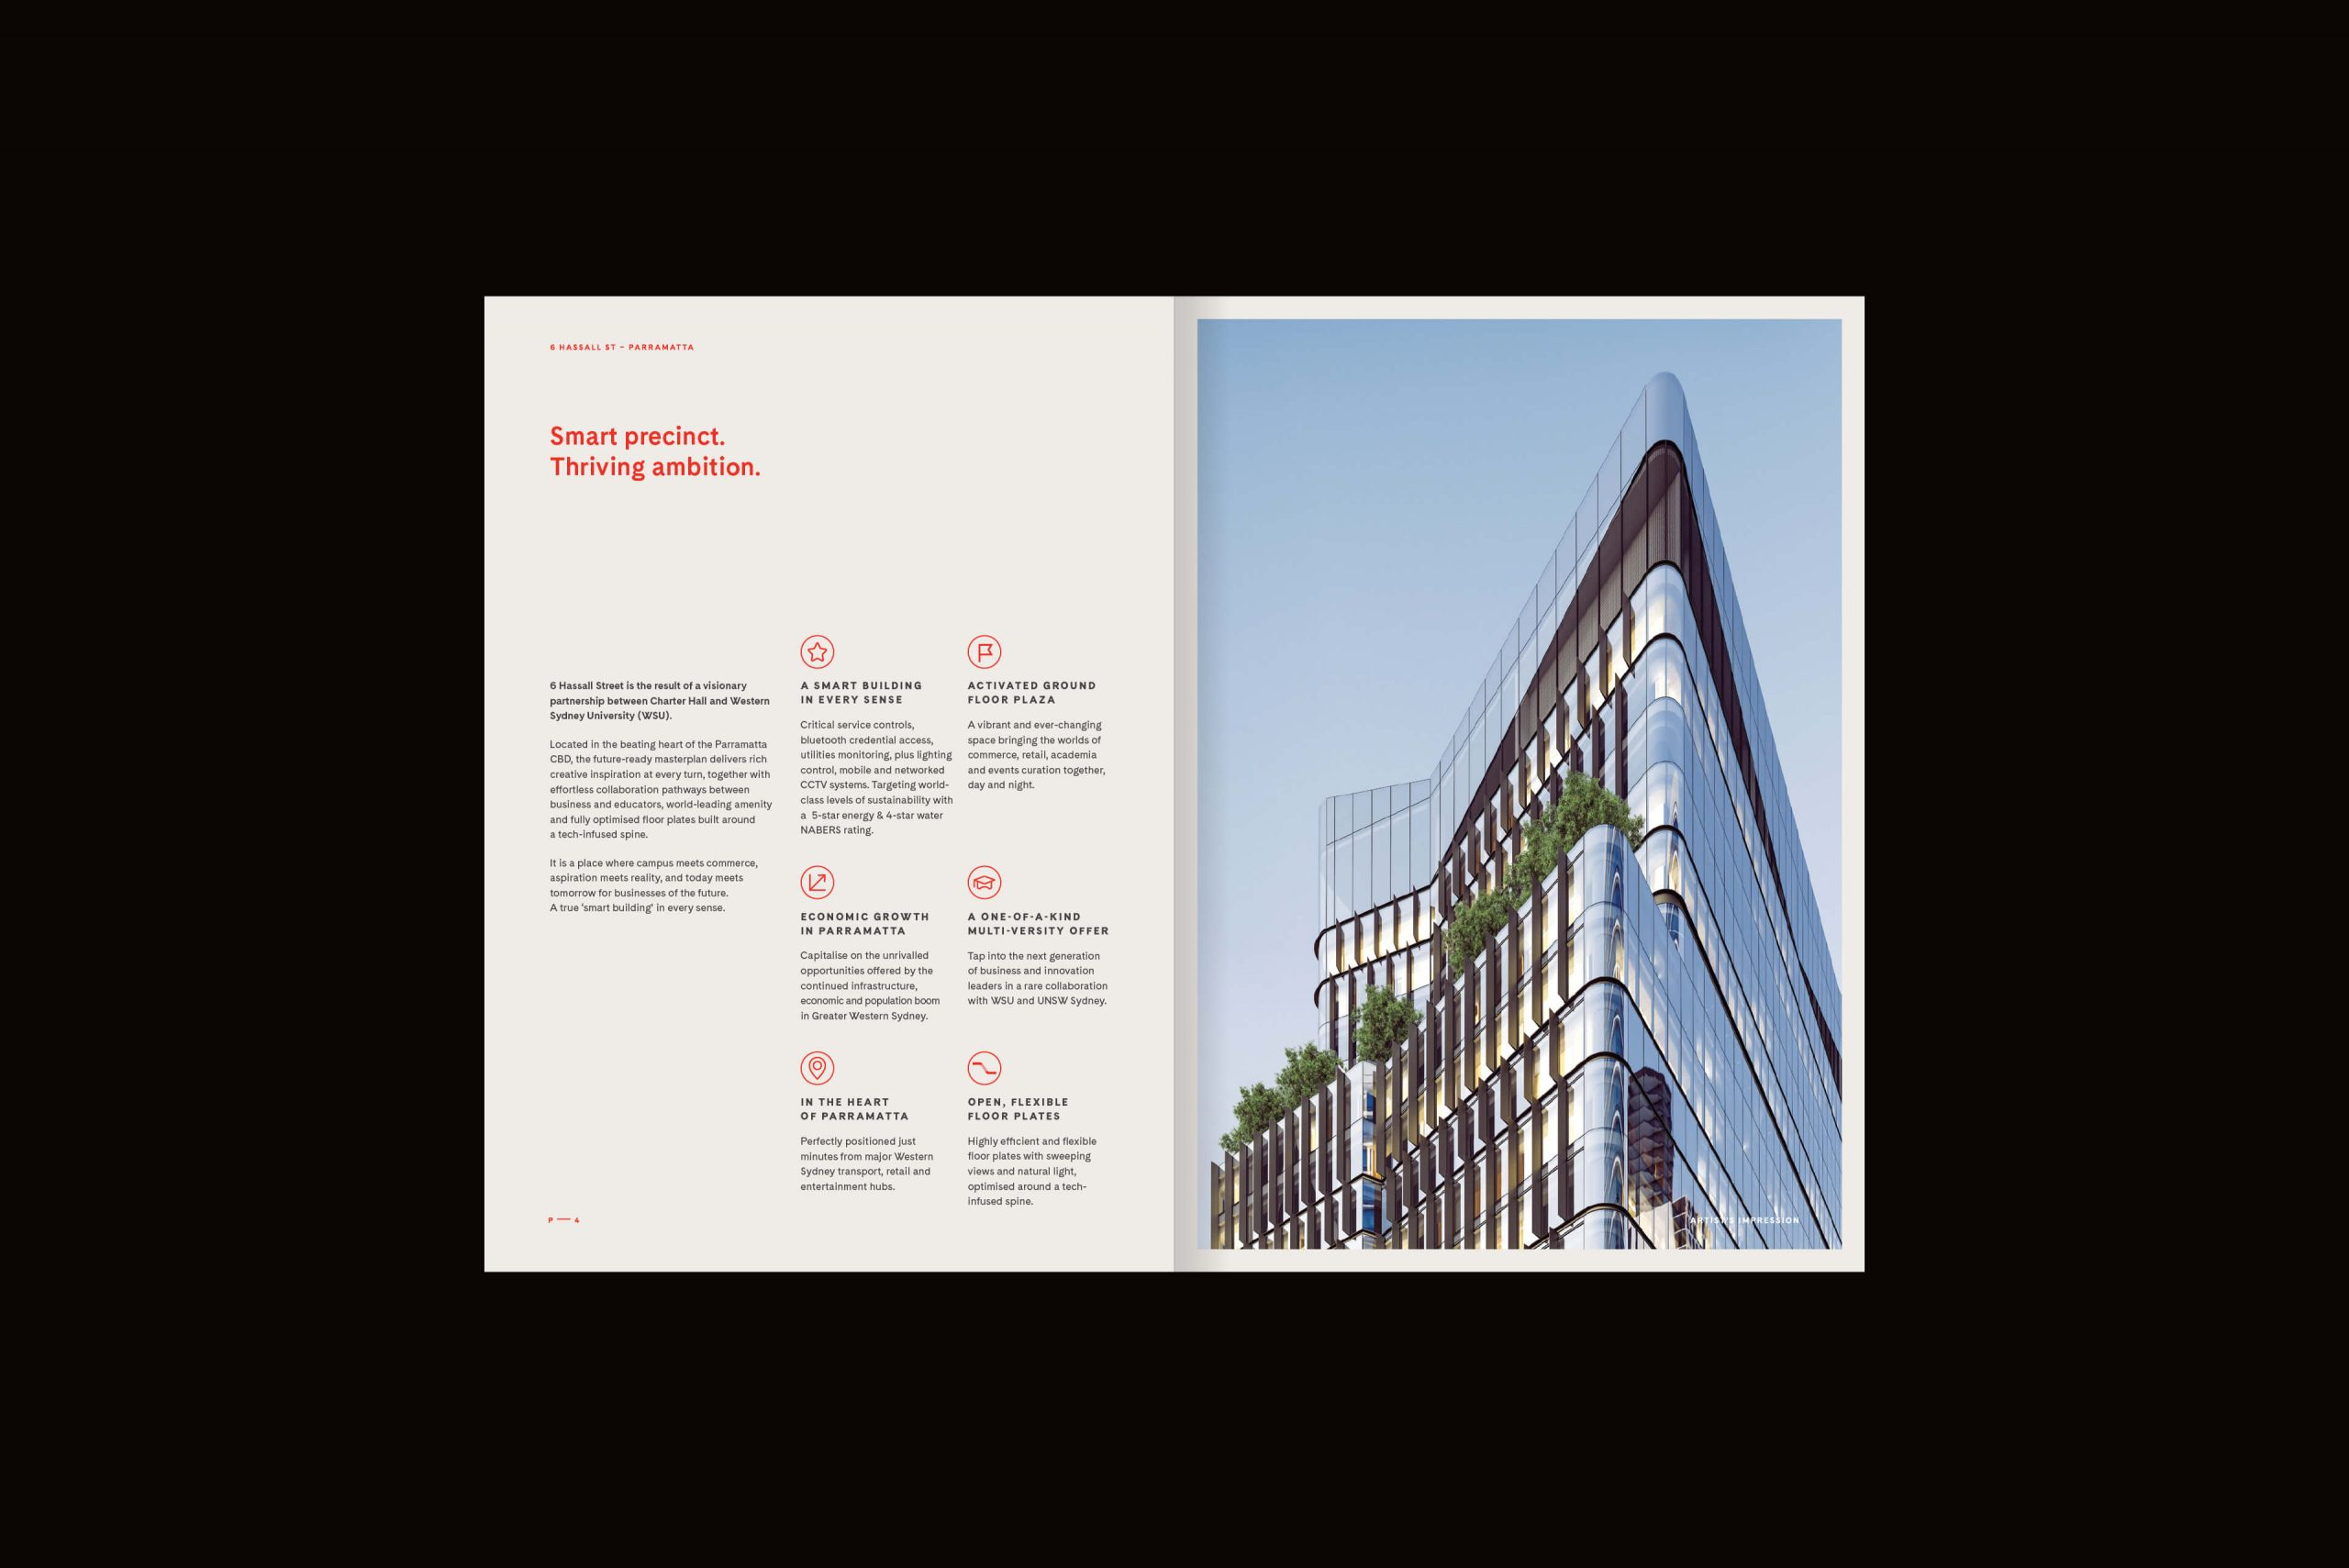 6 Hassall St Property Brand for Charter Hall - Brochure Spread 2